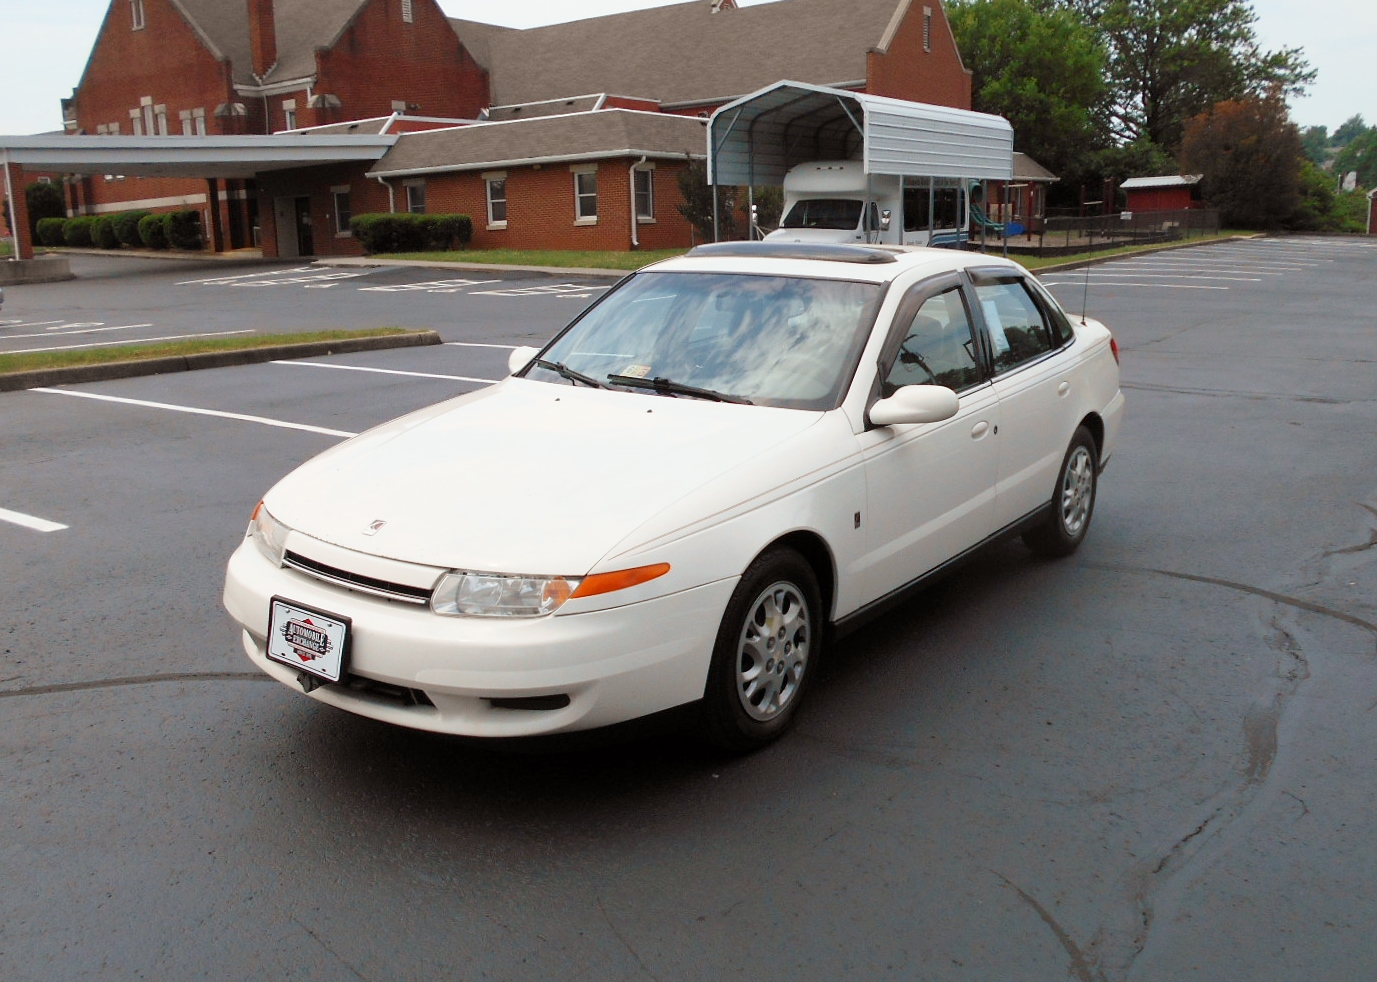 2002 Saturn L200 001 2002 Saturn L200 001 – Automobile ...